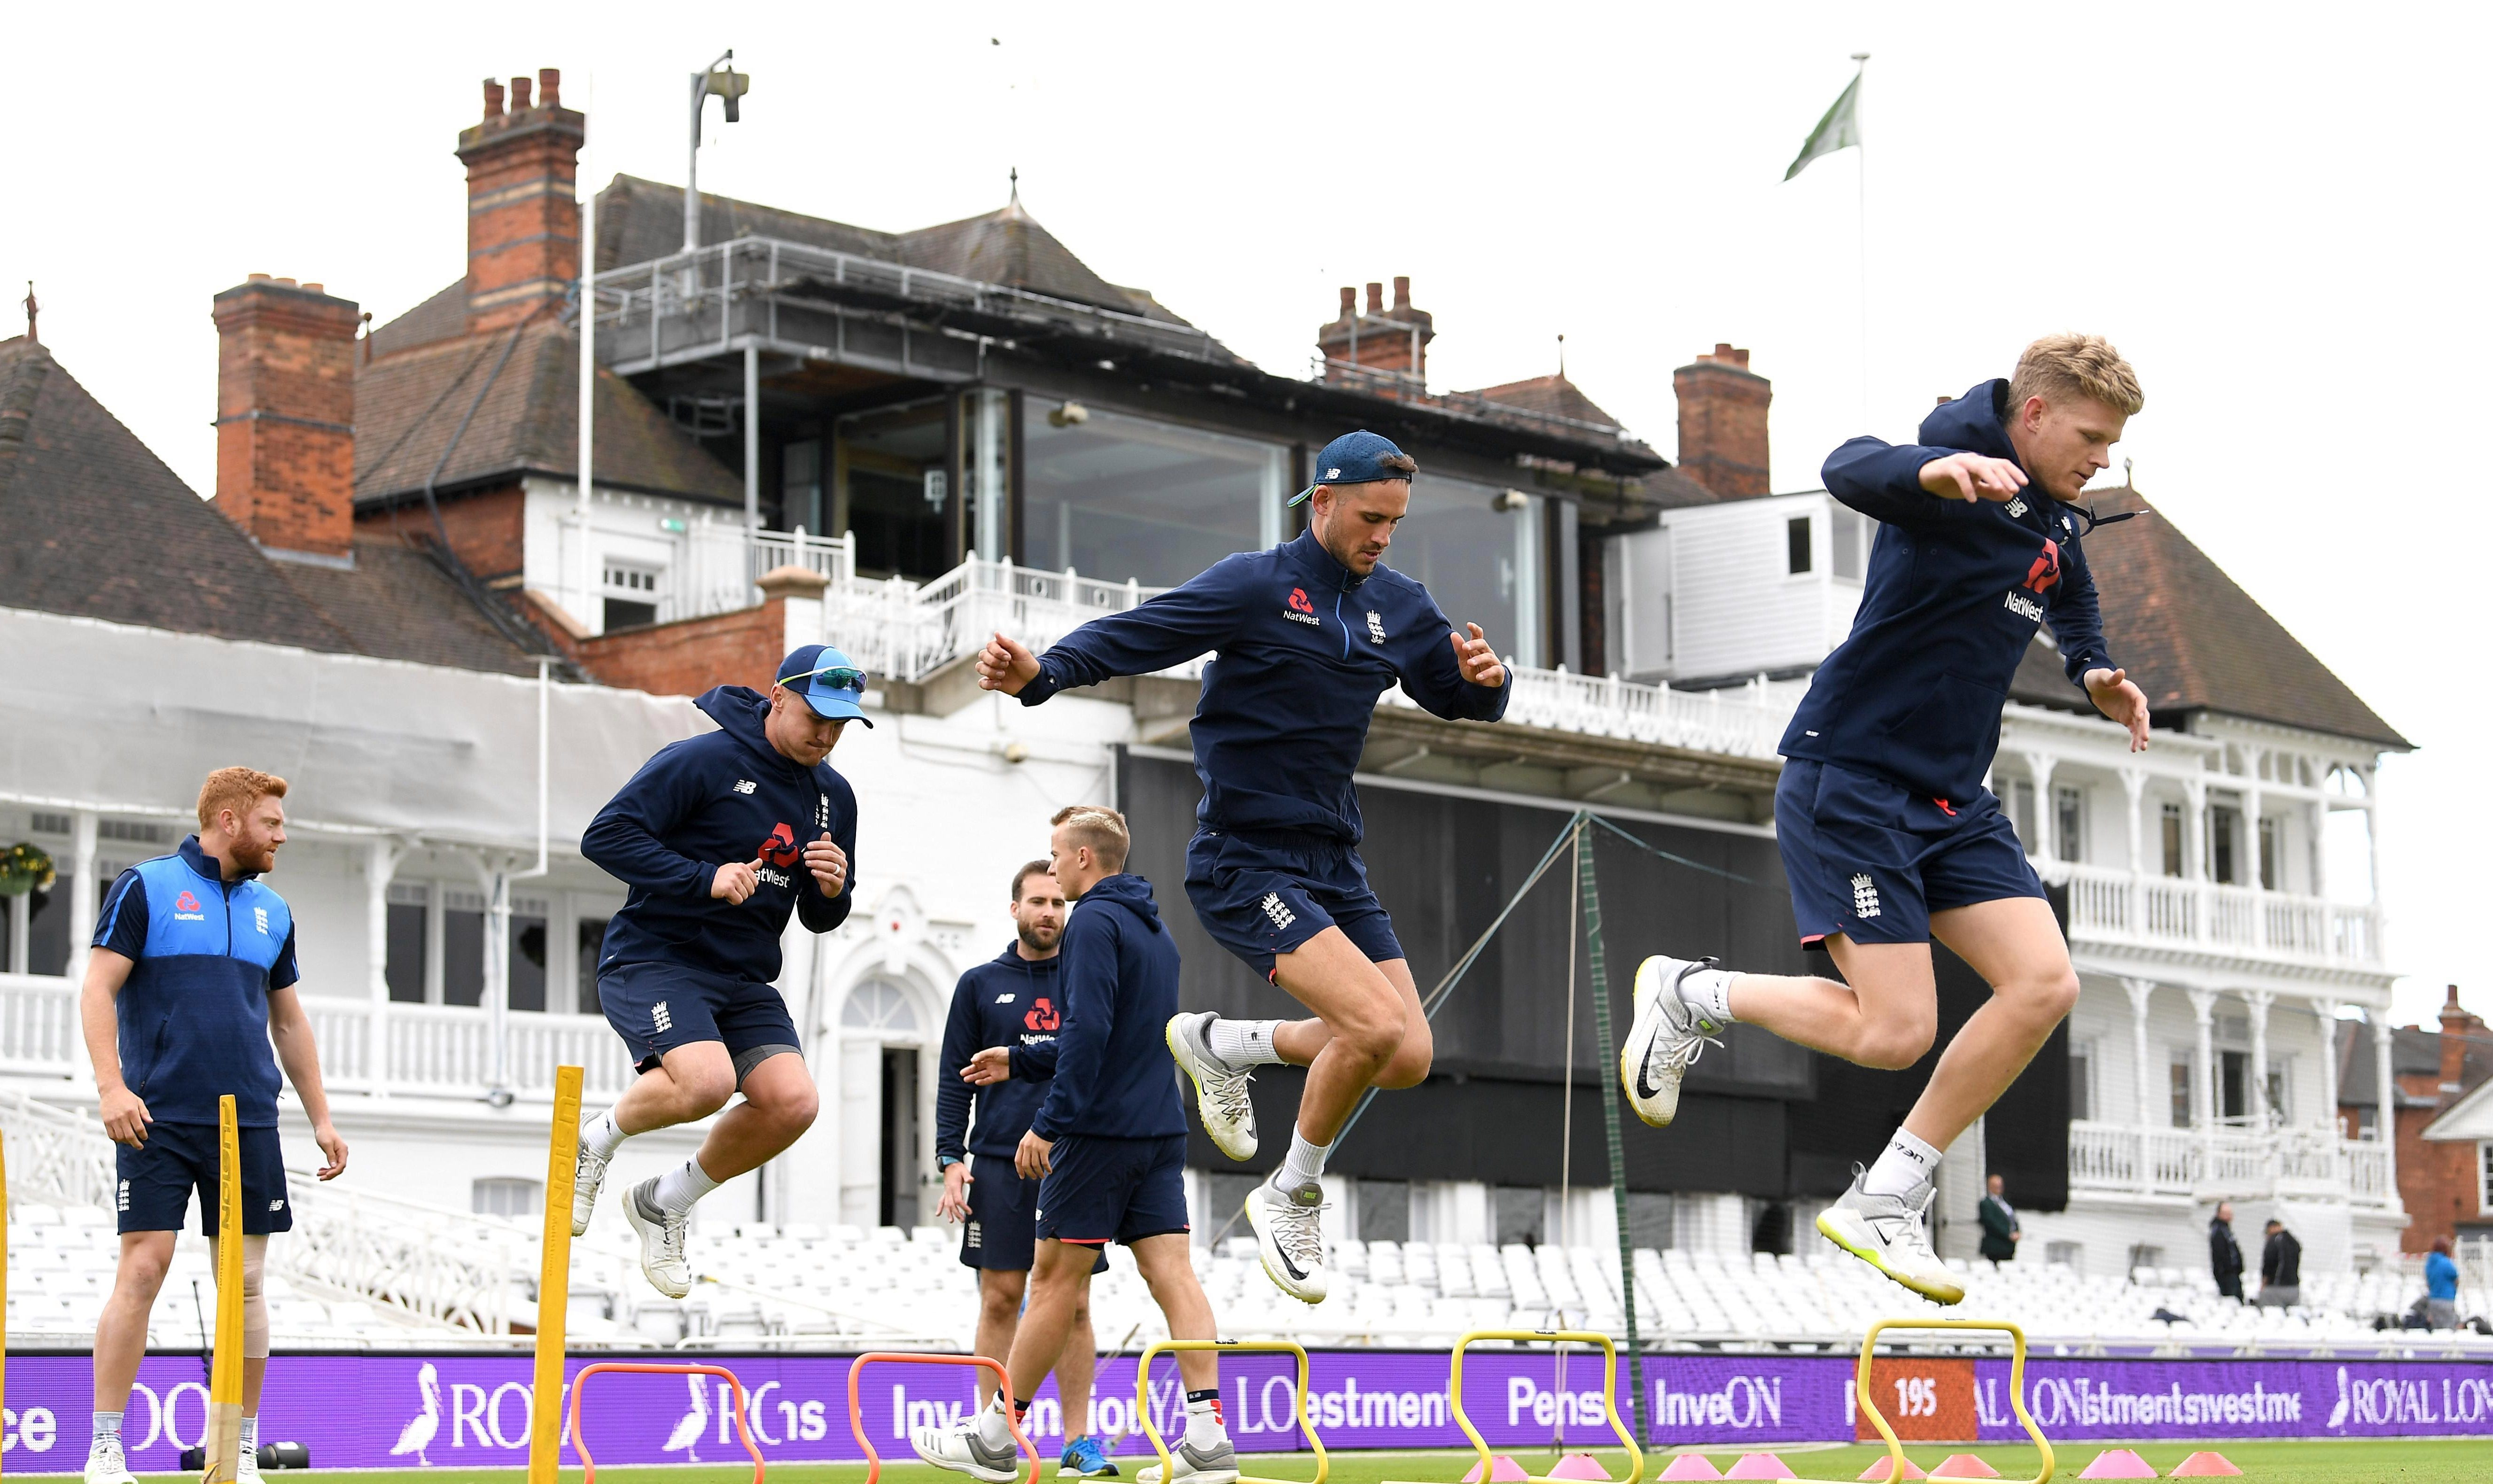 England prepare for Tuesday's third ODI in Nottingham